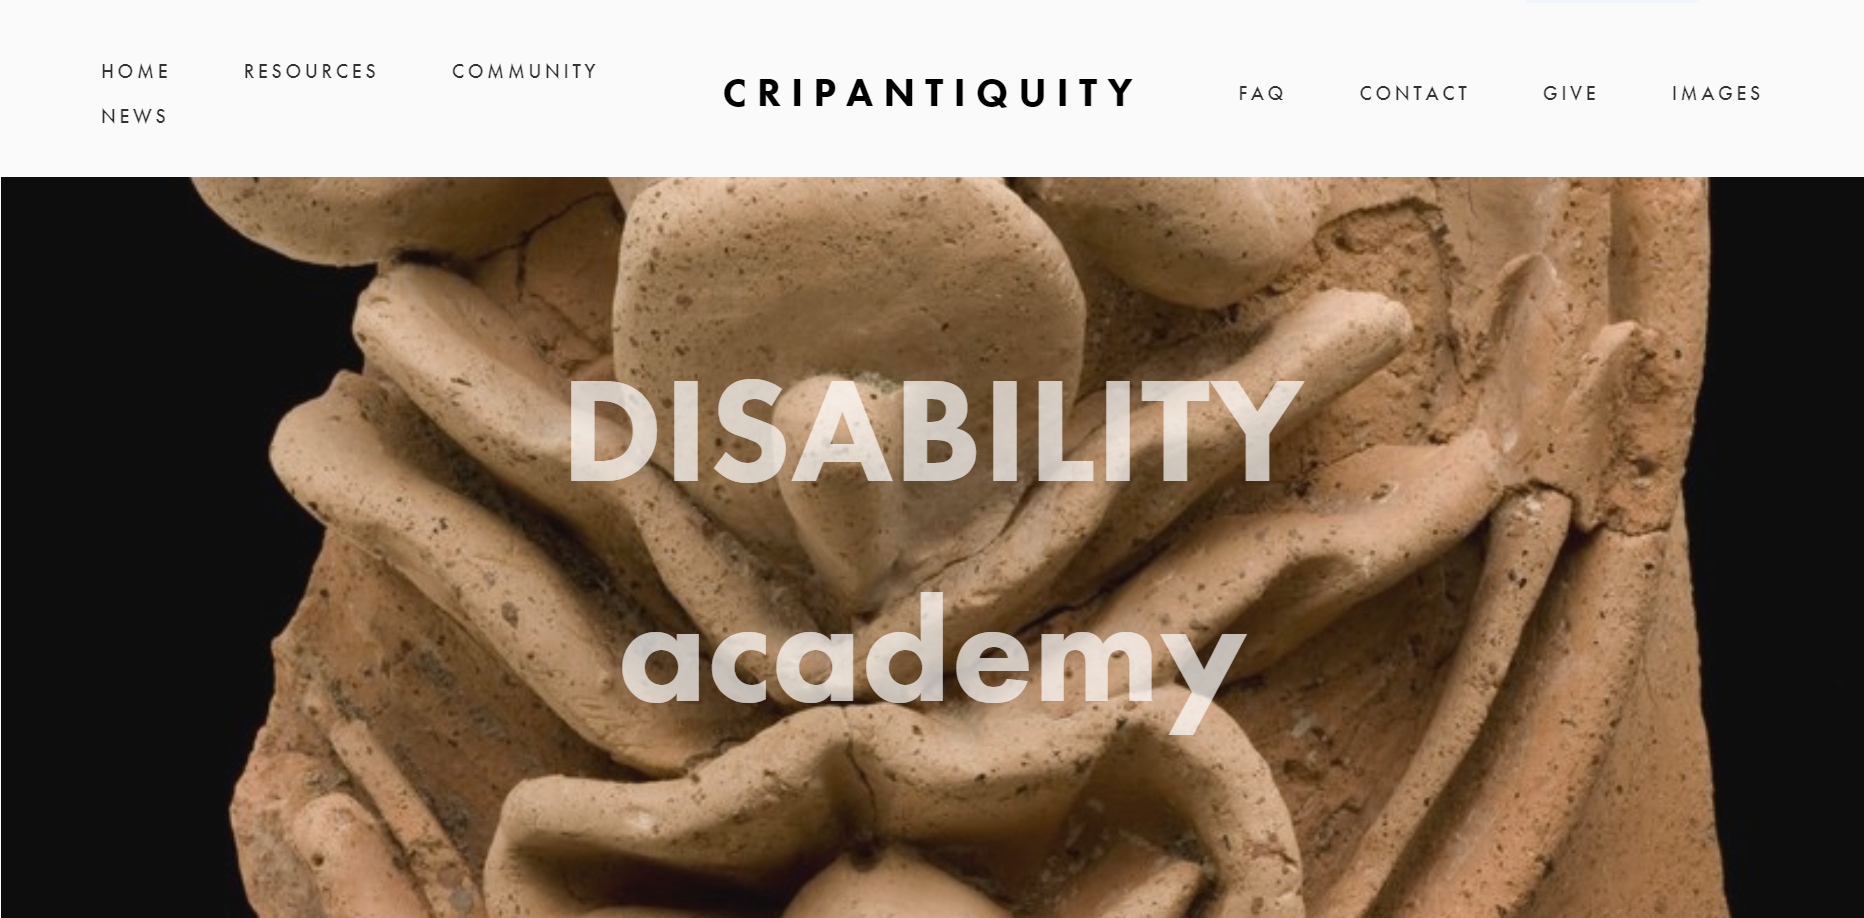 A screen capture of CripAntiquity's website landing page. Text: CRIPANTIQUITY, DISABILITY academy